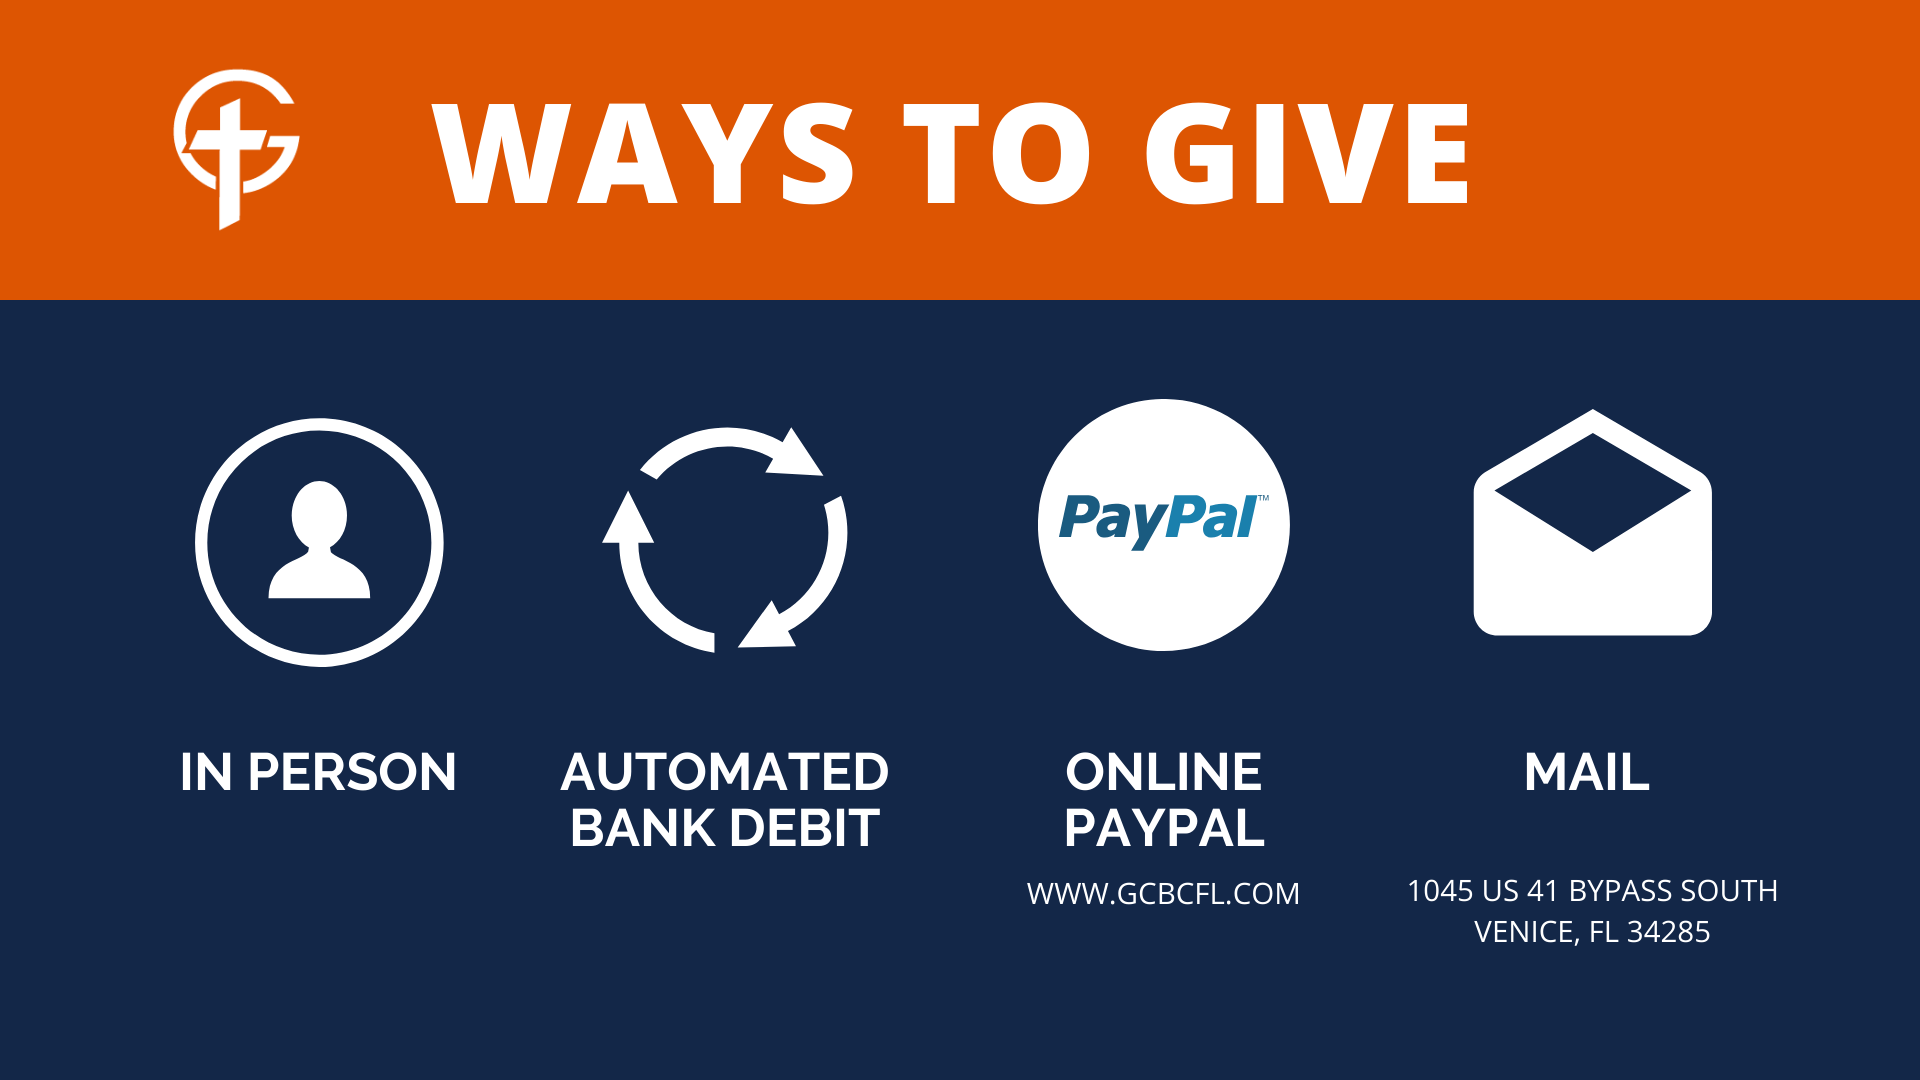 WAYS TO GIVE-3